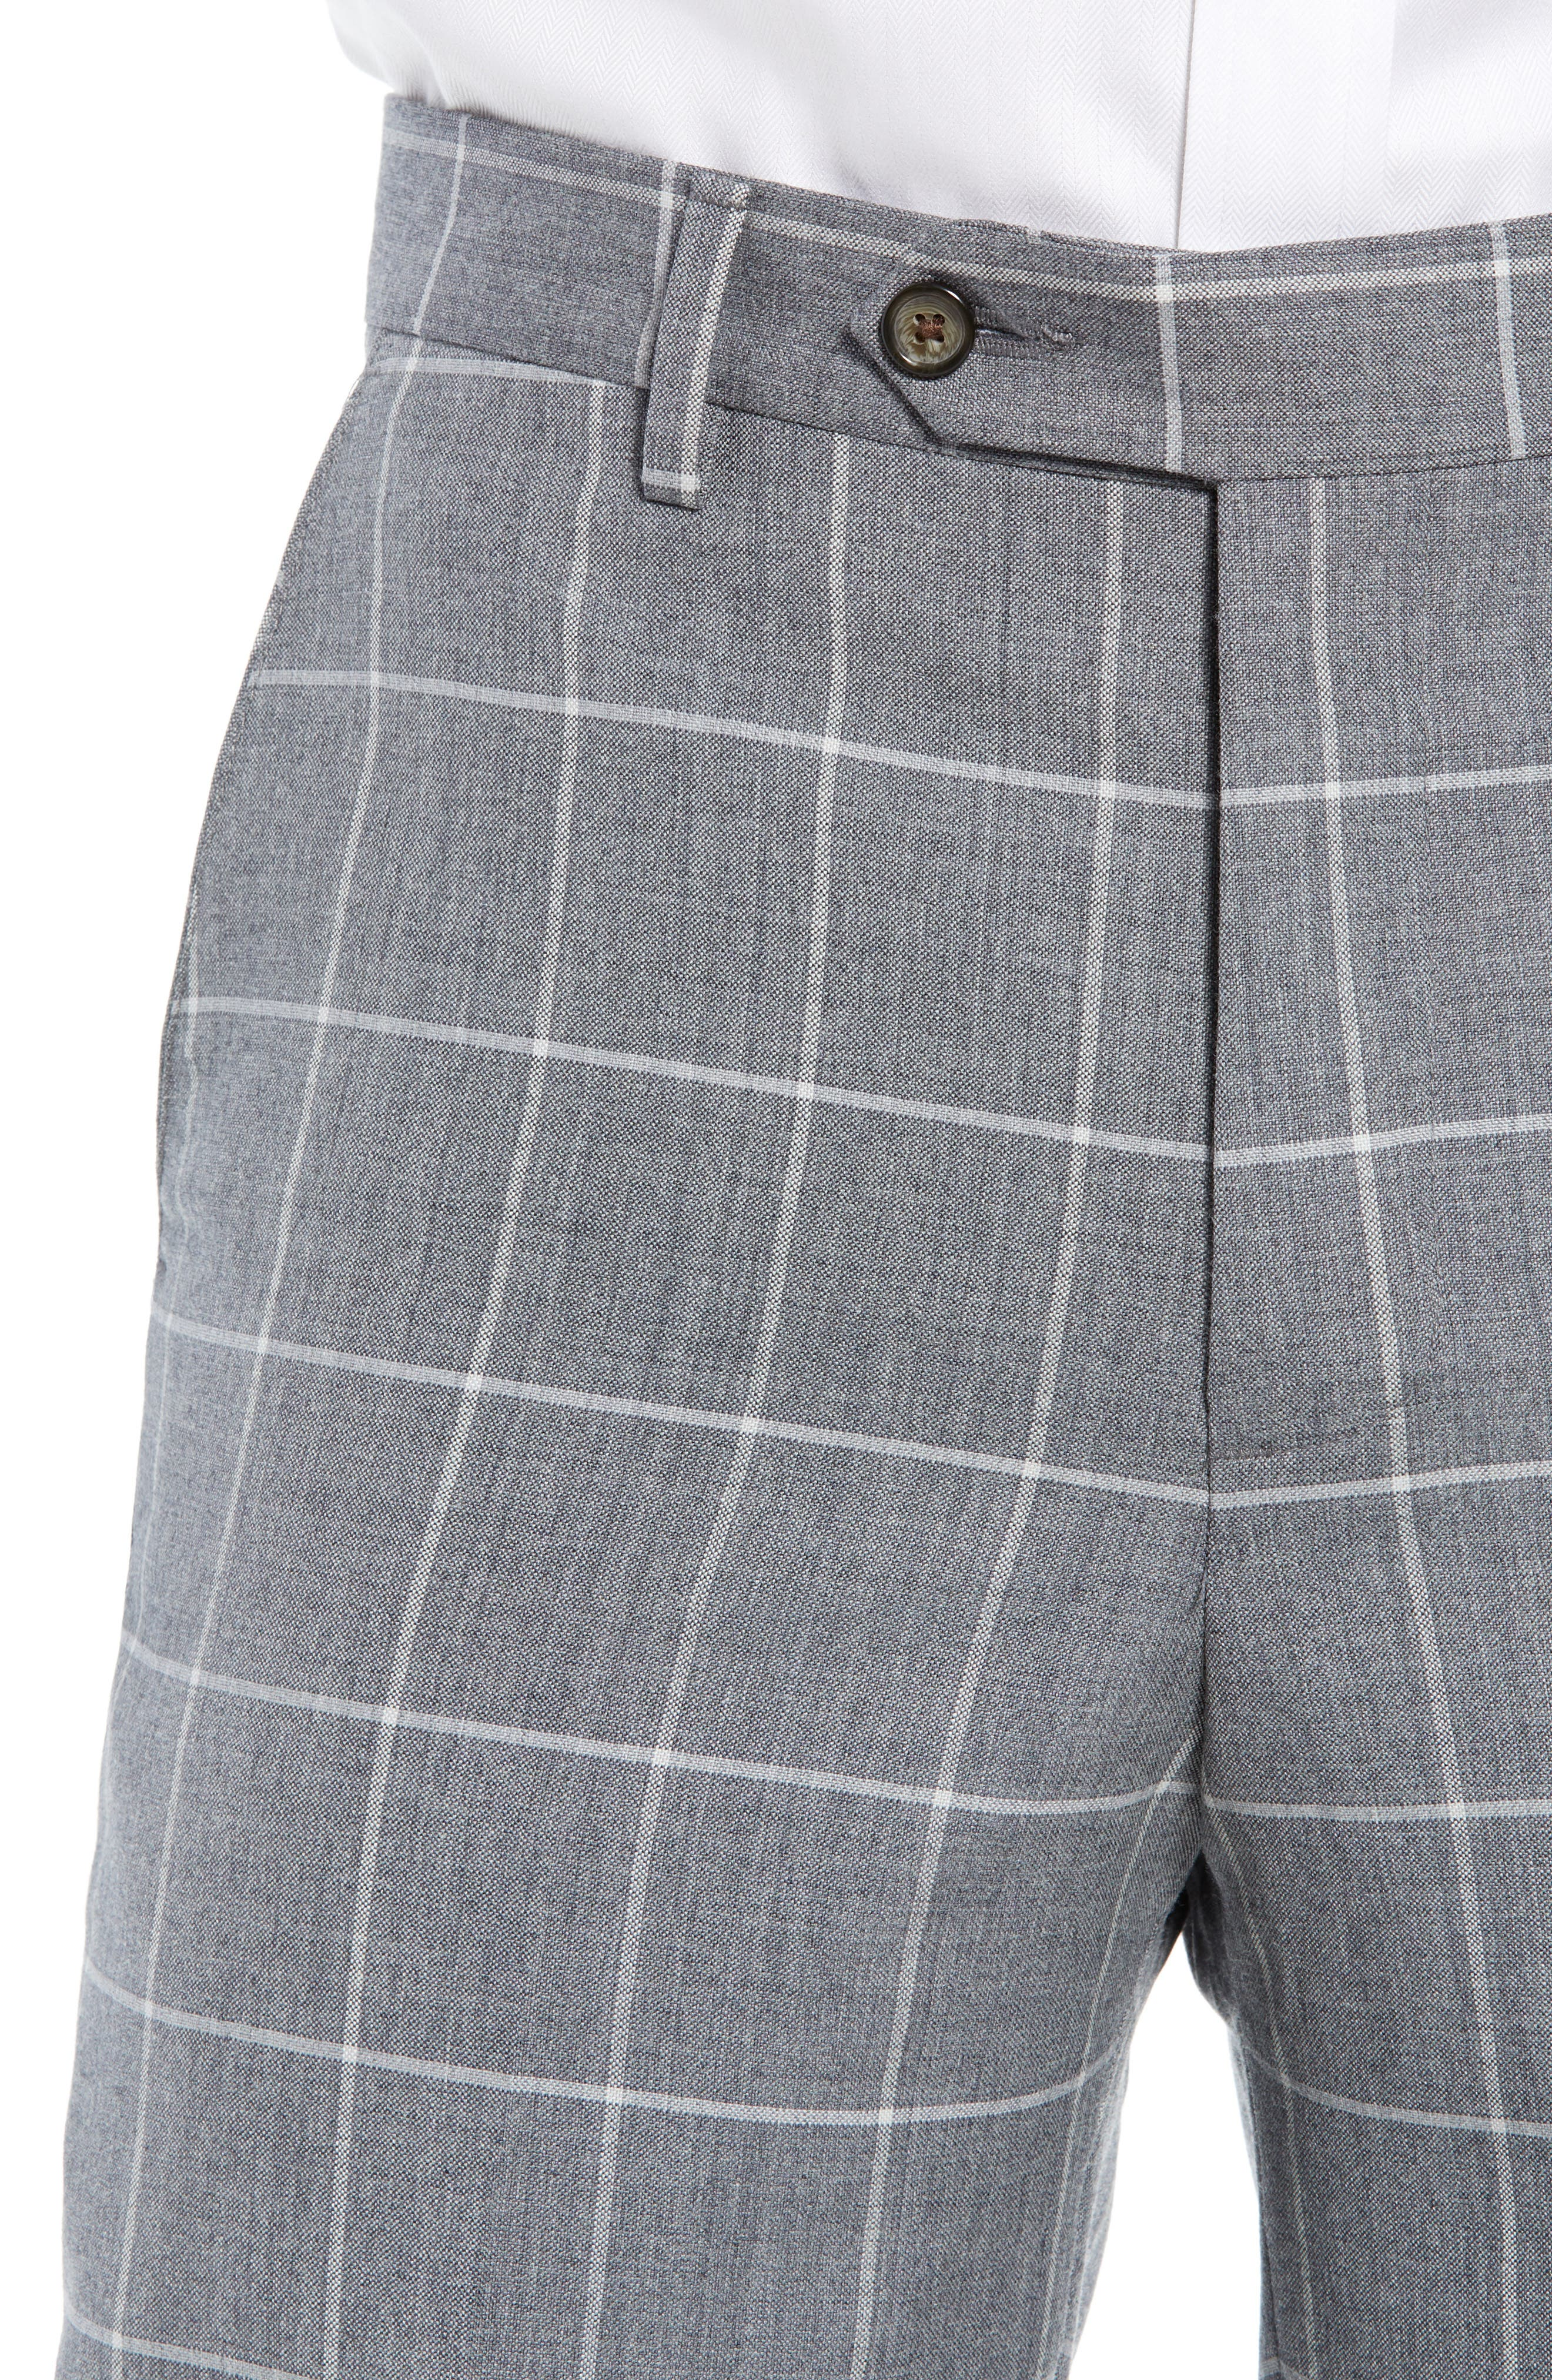 Manufacturing Flat Front Windowpane Wool Trousers,                             Alternate thumbnail 4, color,                             101